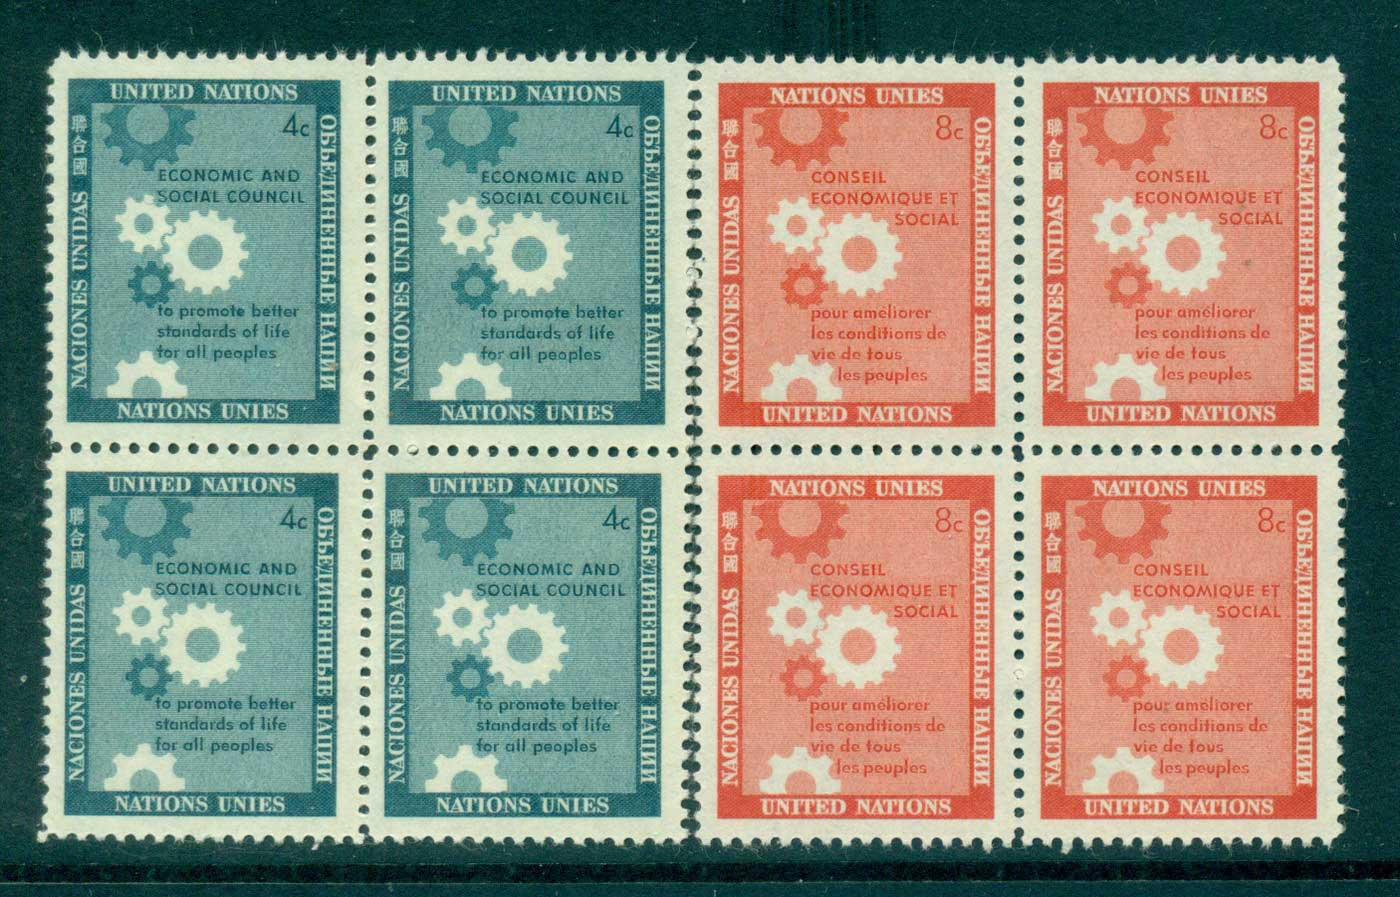 UN New York 1957 Honouring the Economic & Social Council Blk 4 MUH lot40902